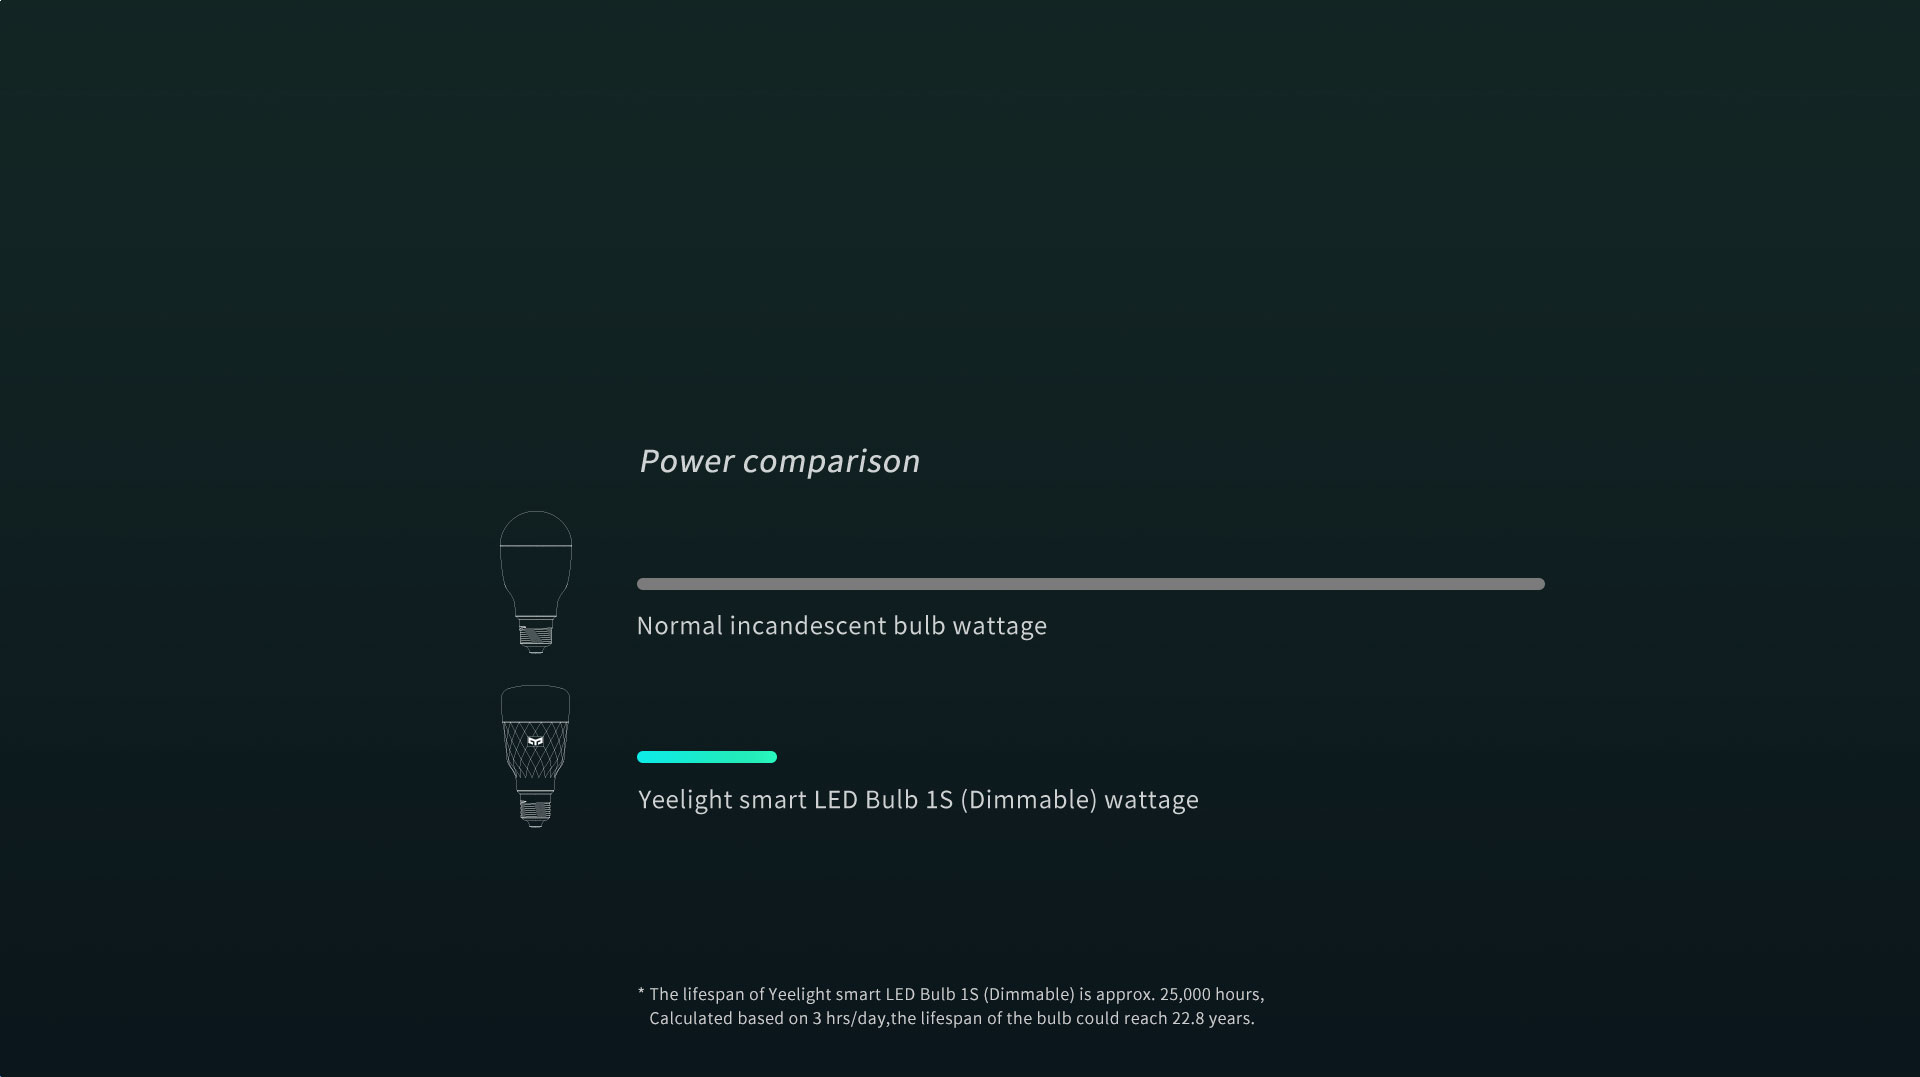 Optimized for lower power consumption » Smart LED Bulb 1S (Dimmable)